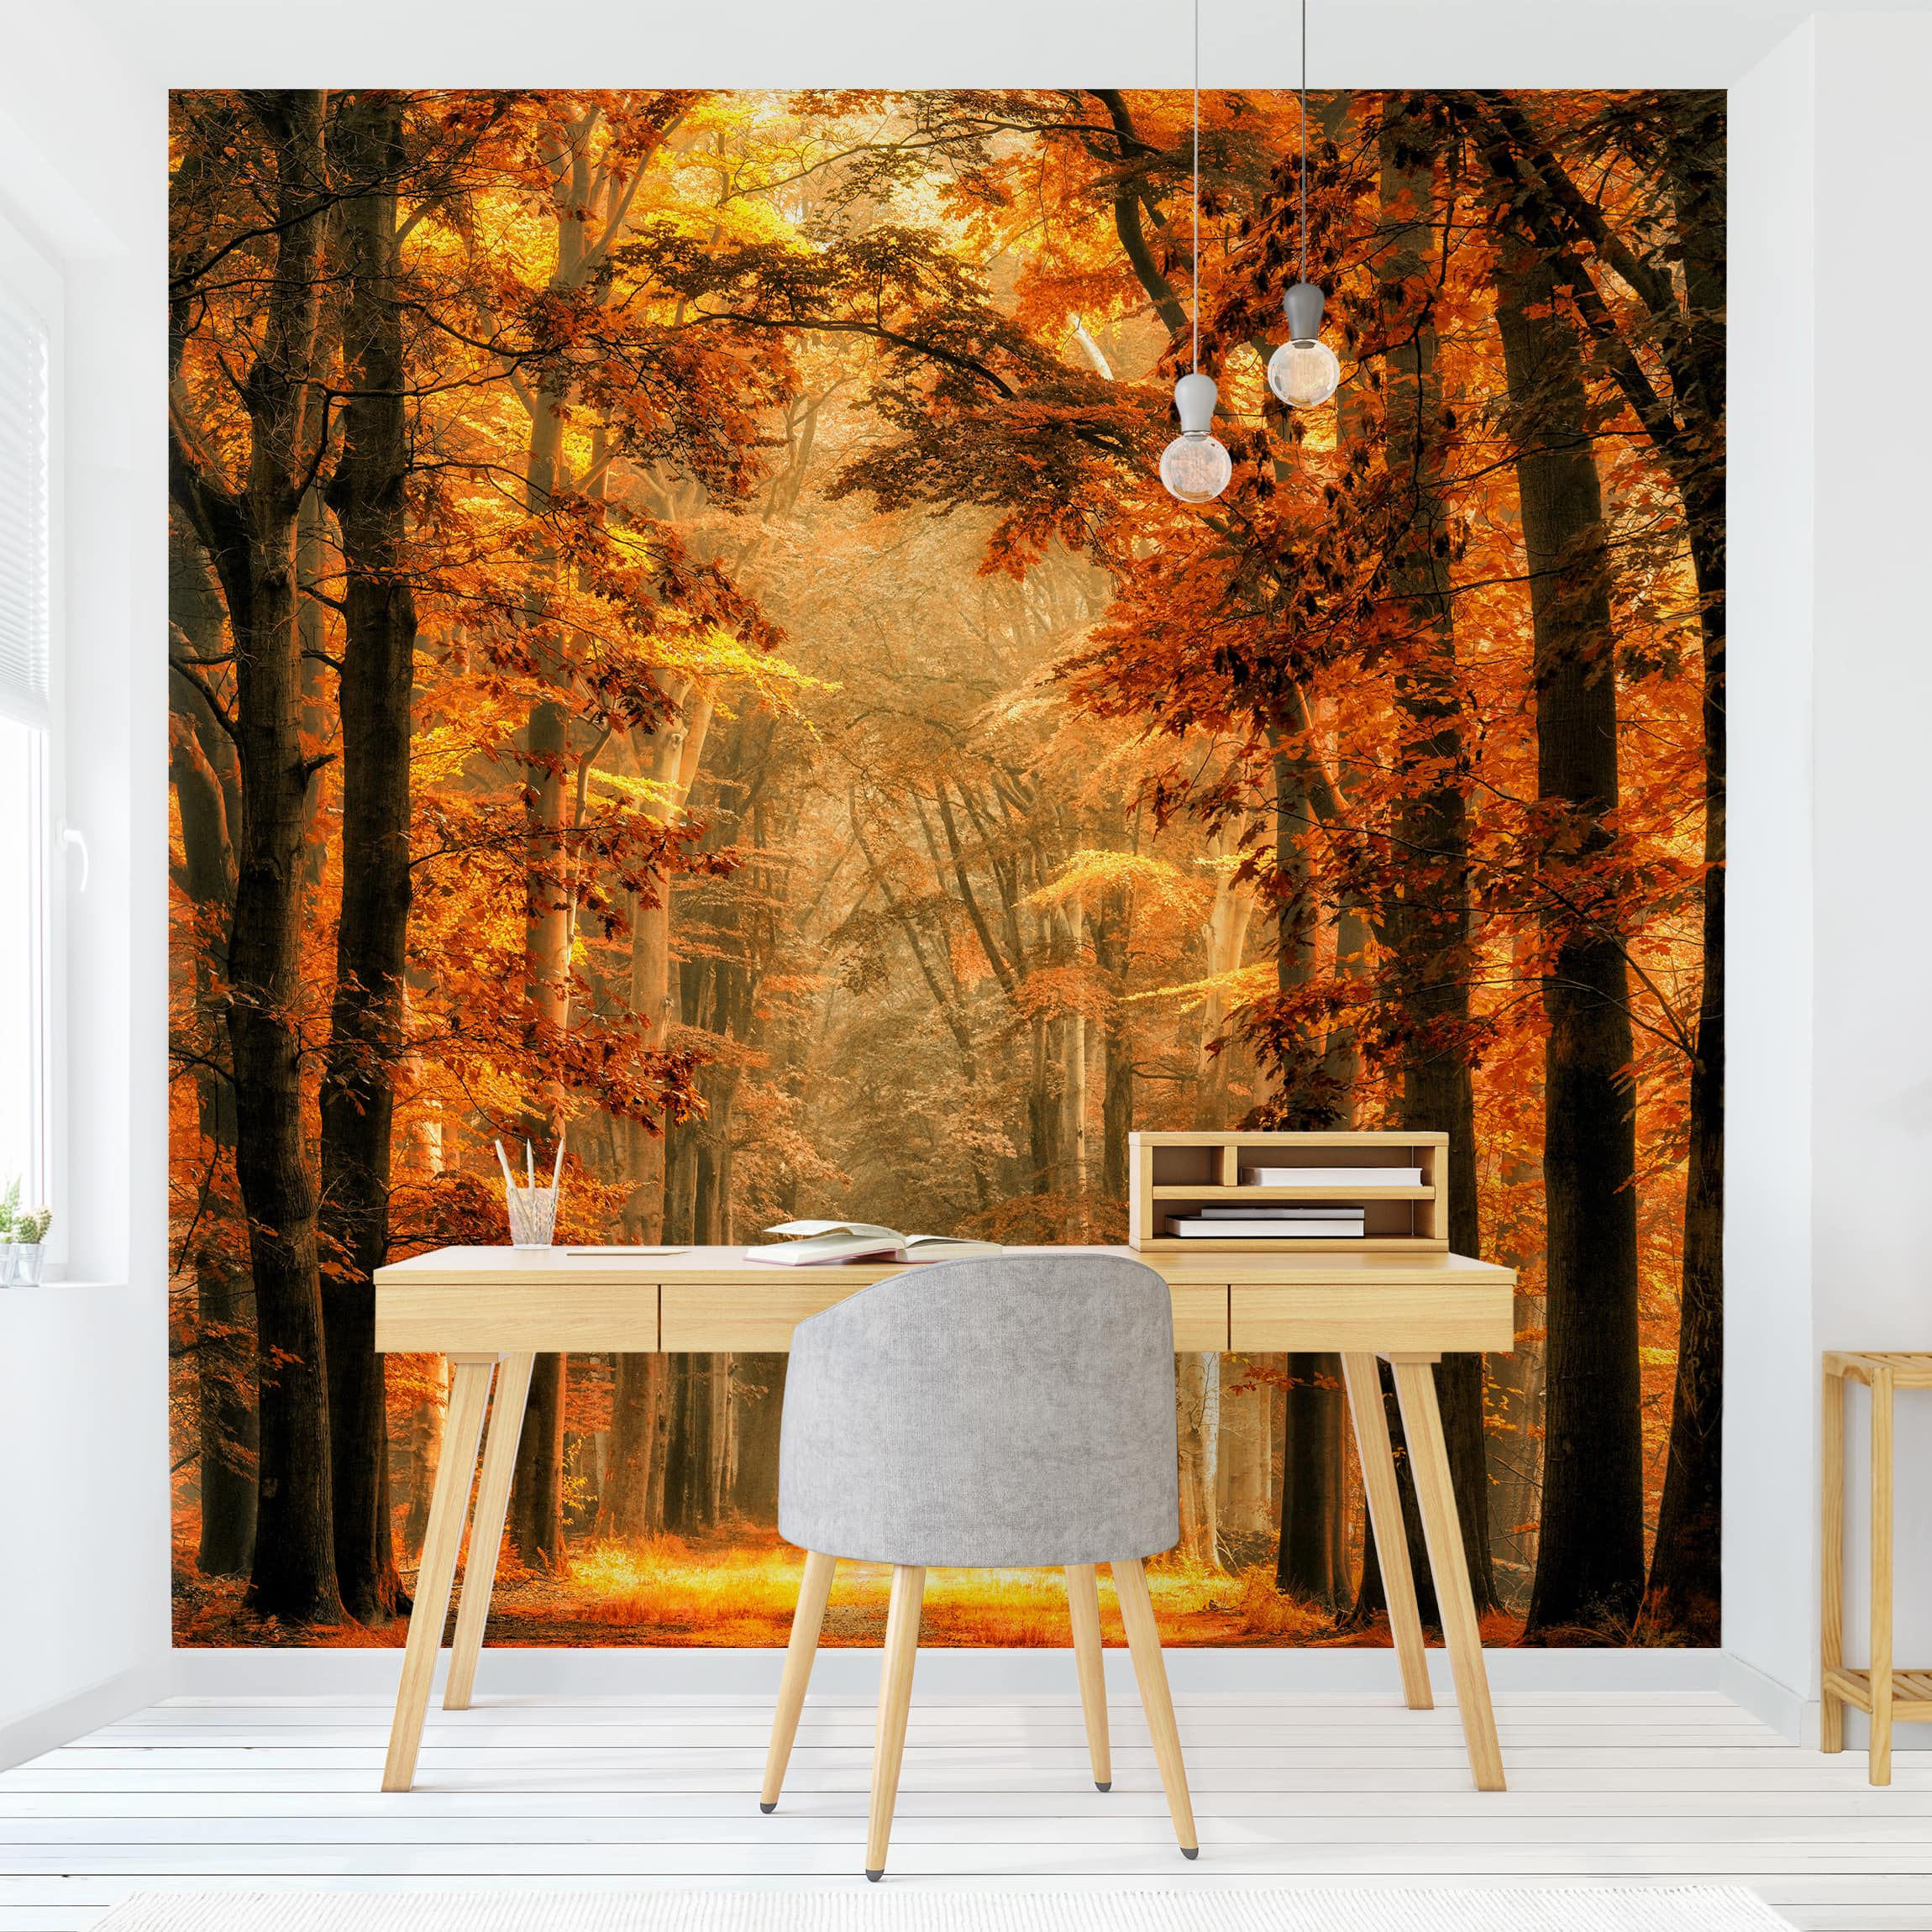 Photo Wall Mural Enchanted Forest In Autumn Self Adhesive Wallpaper Square Format